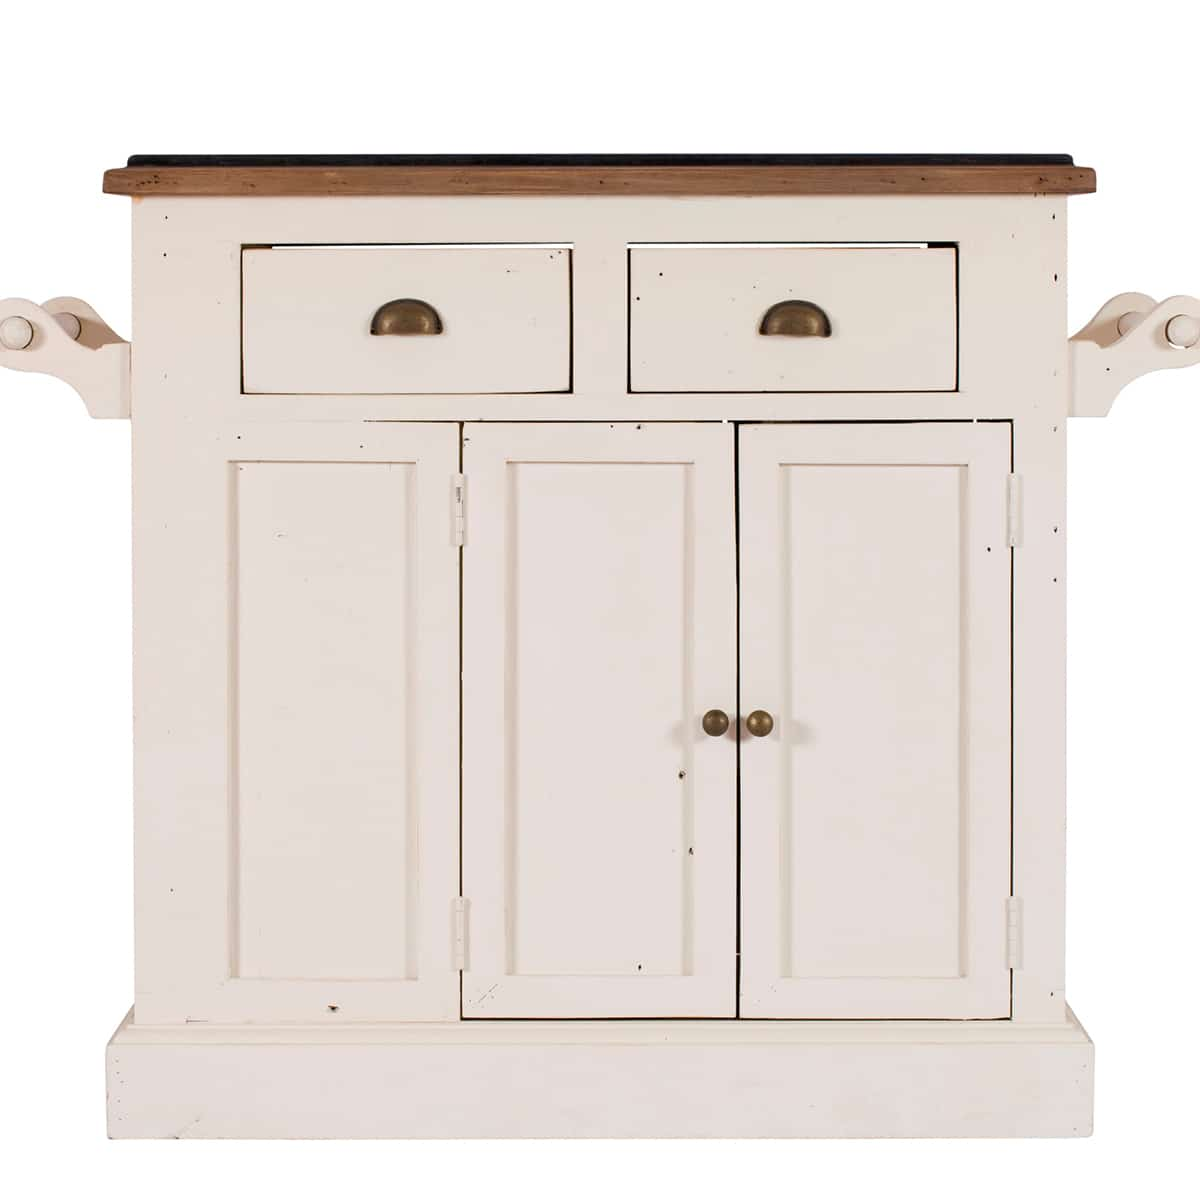 kitchen island furniture kitchen islands pictures to pin kitchen furniture show kitchen island furniture storage